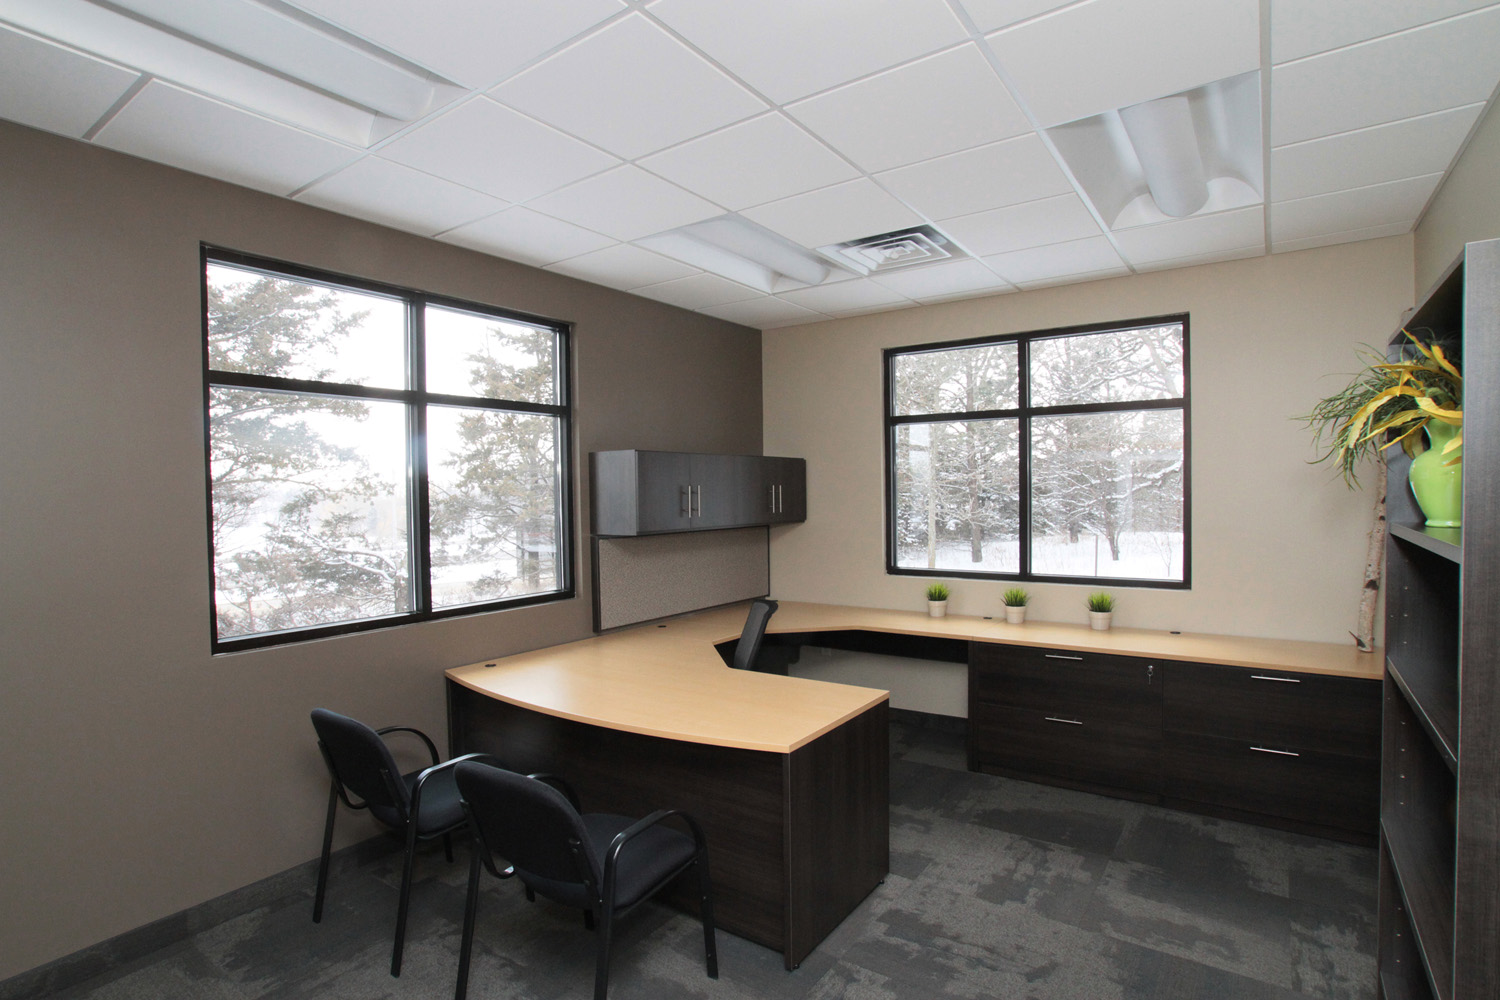 Office space design mankato new used office for Space architecture and design